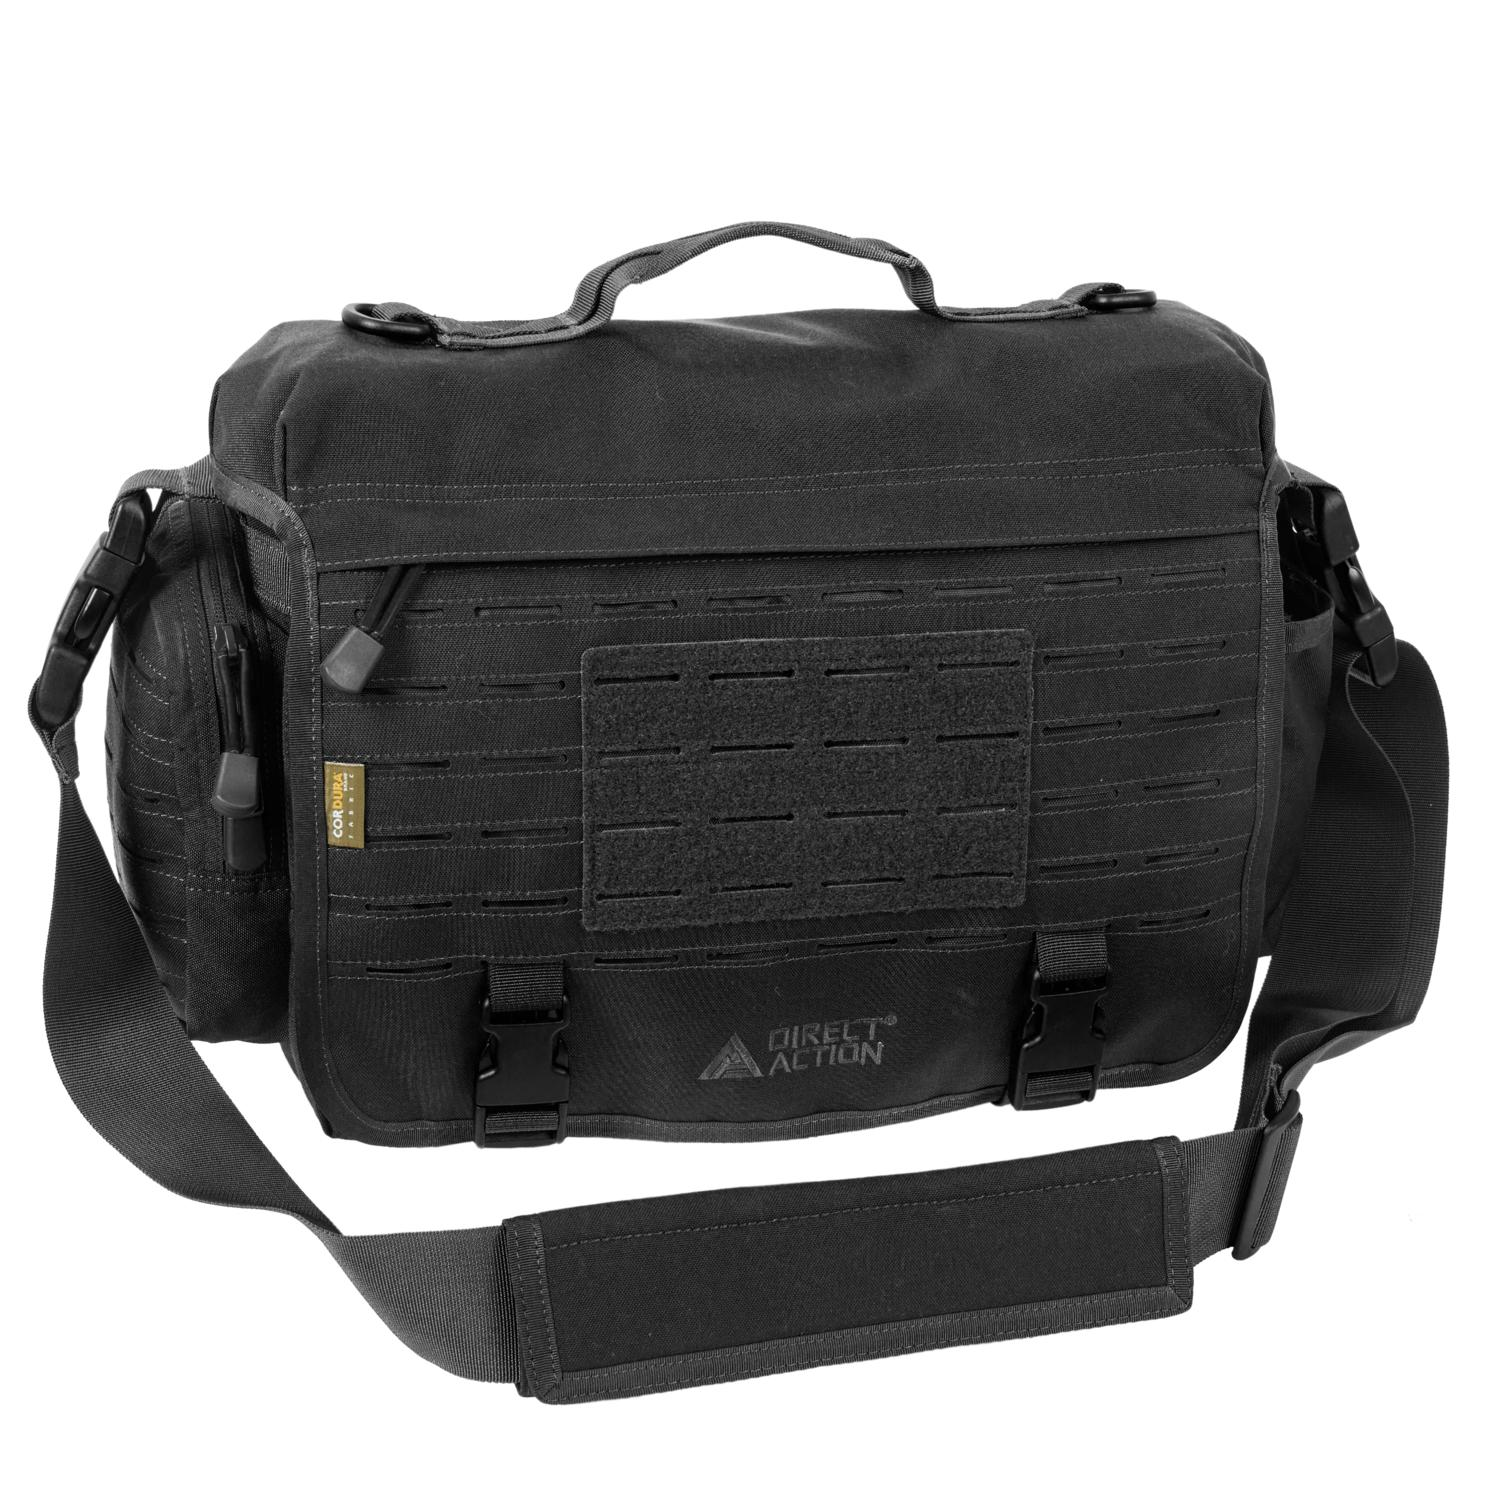 Túi MESSENGER BAG MK II –  Black